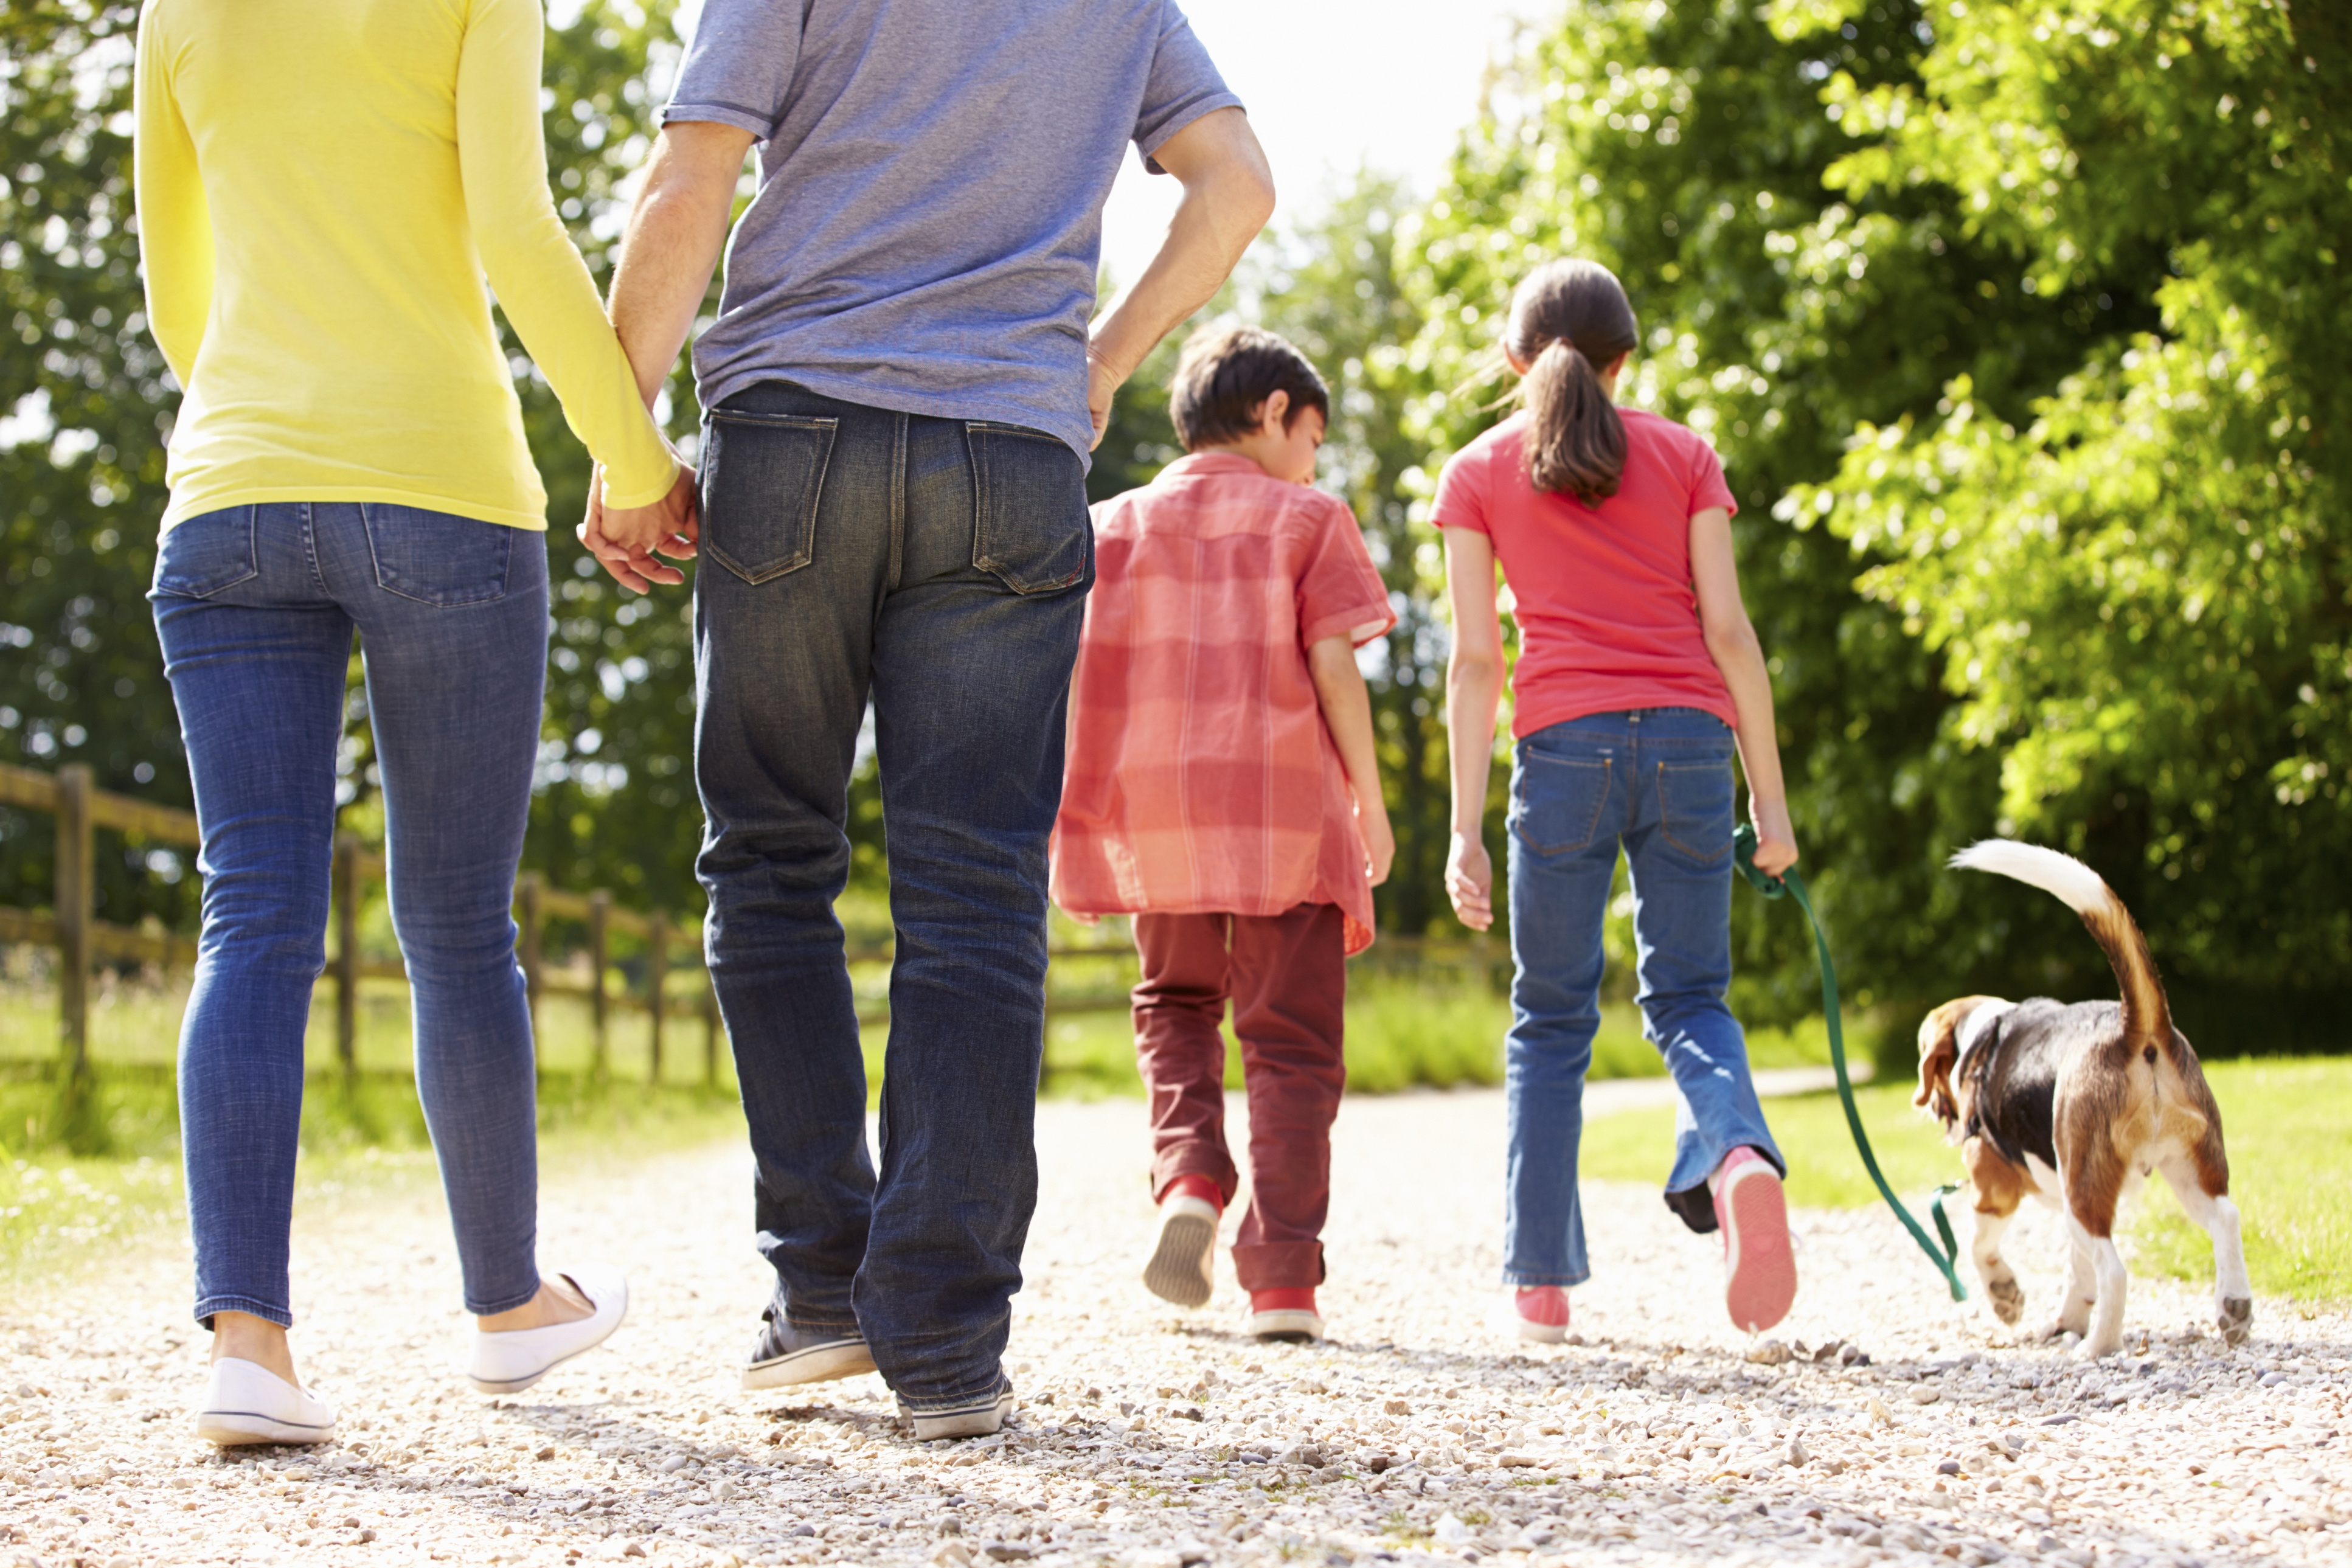 Family_walk_ThinkstockPhotos-466988813